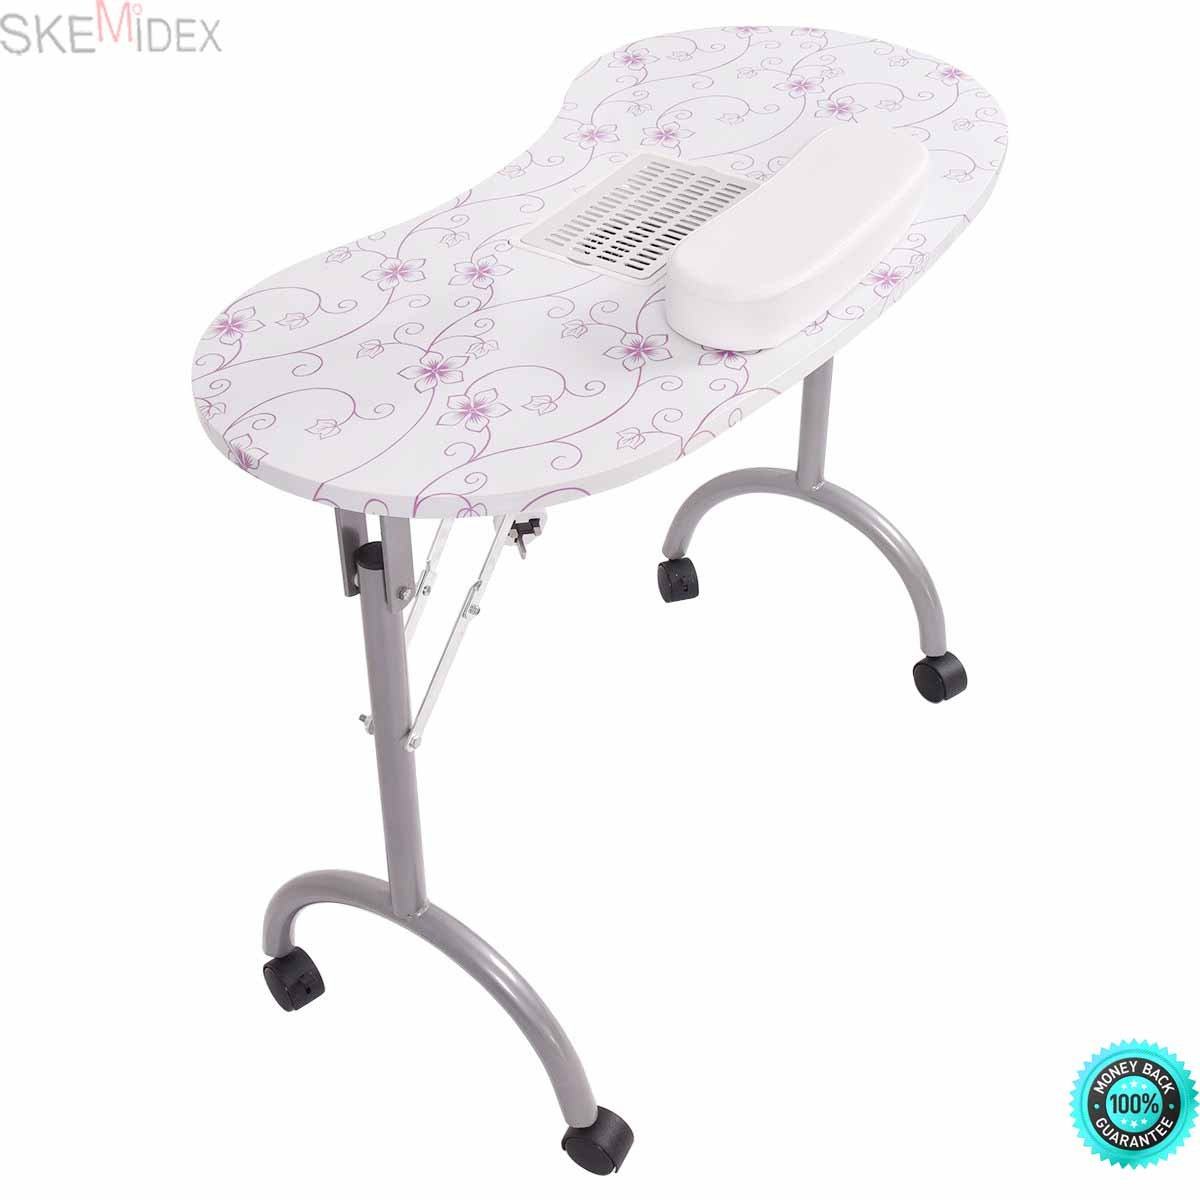 SKEMiDEX---Folding Portable Vented Manicure Table Nail Desk Salon Spa With Fan & Carry Bag Our brand new and portable Nail Care Desk & Manicure Table which is folding and comes with a sturdy carrying